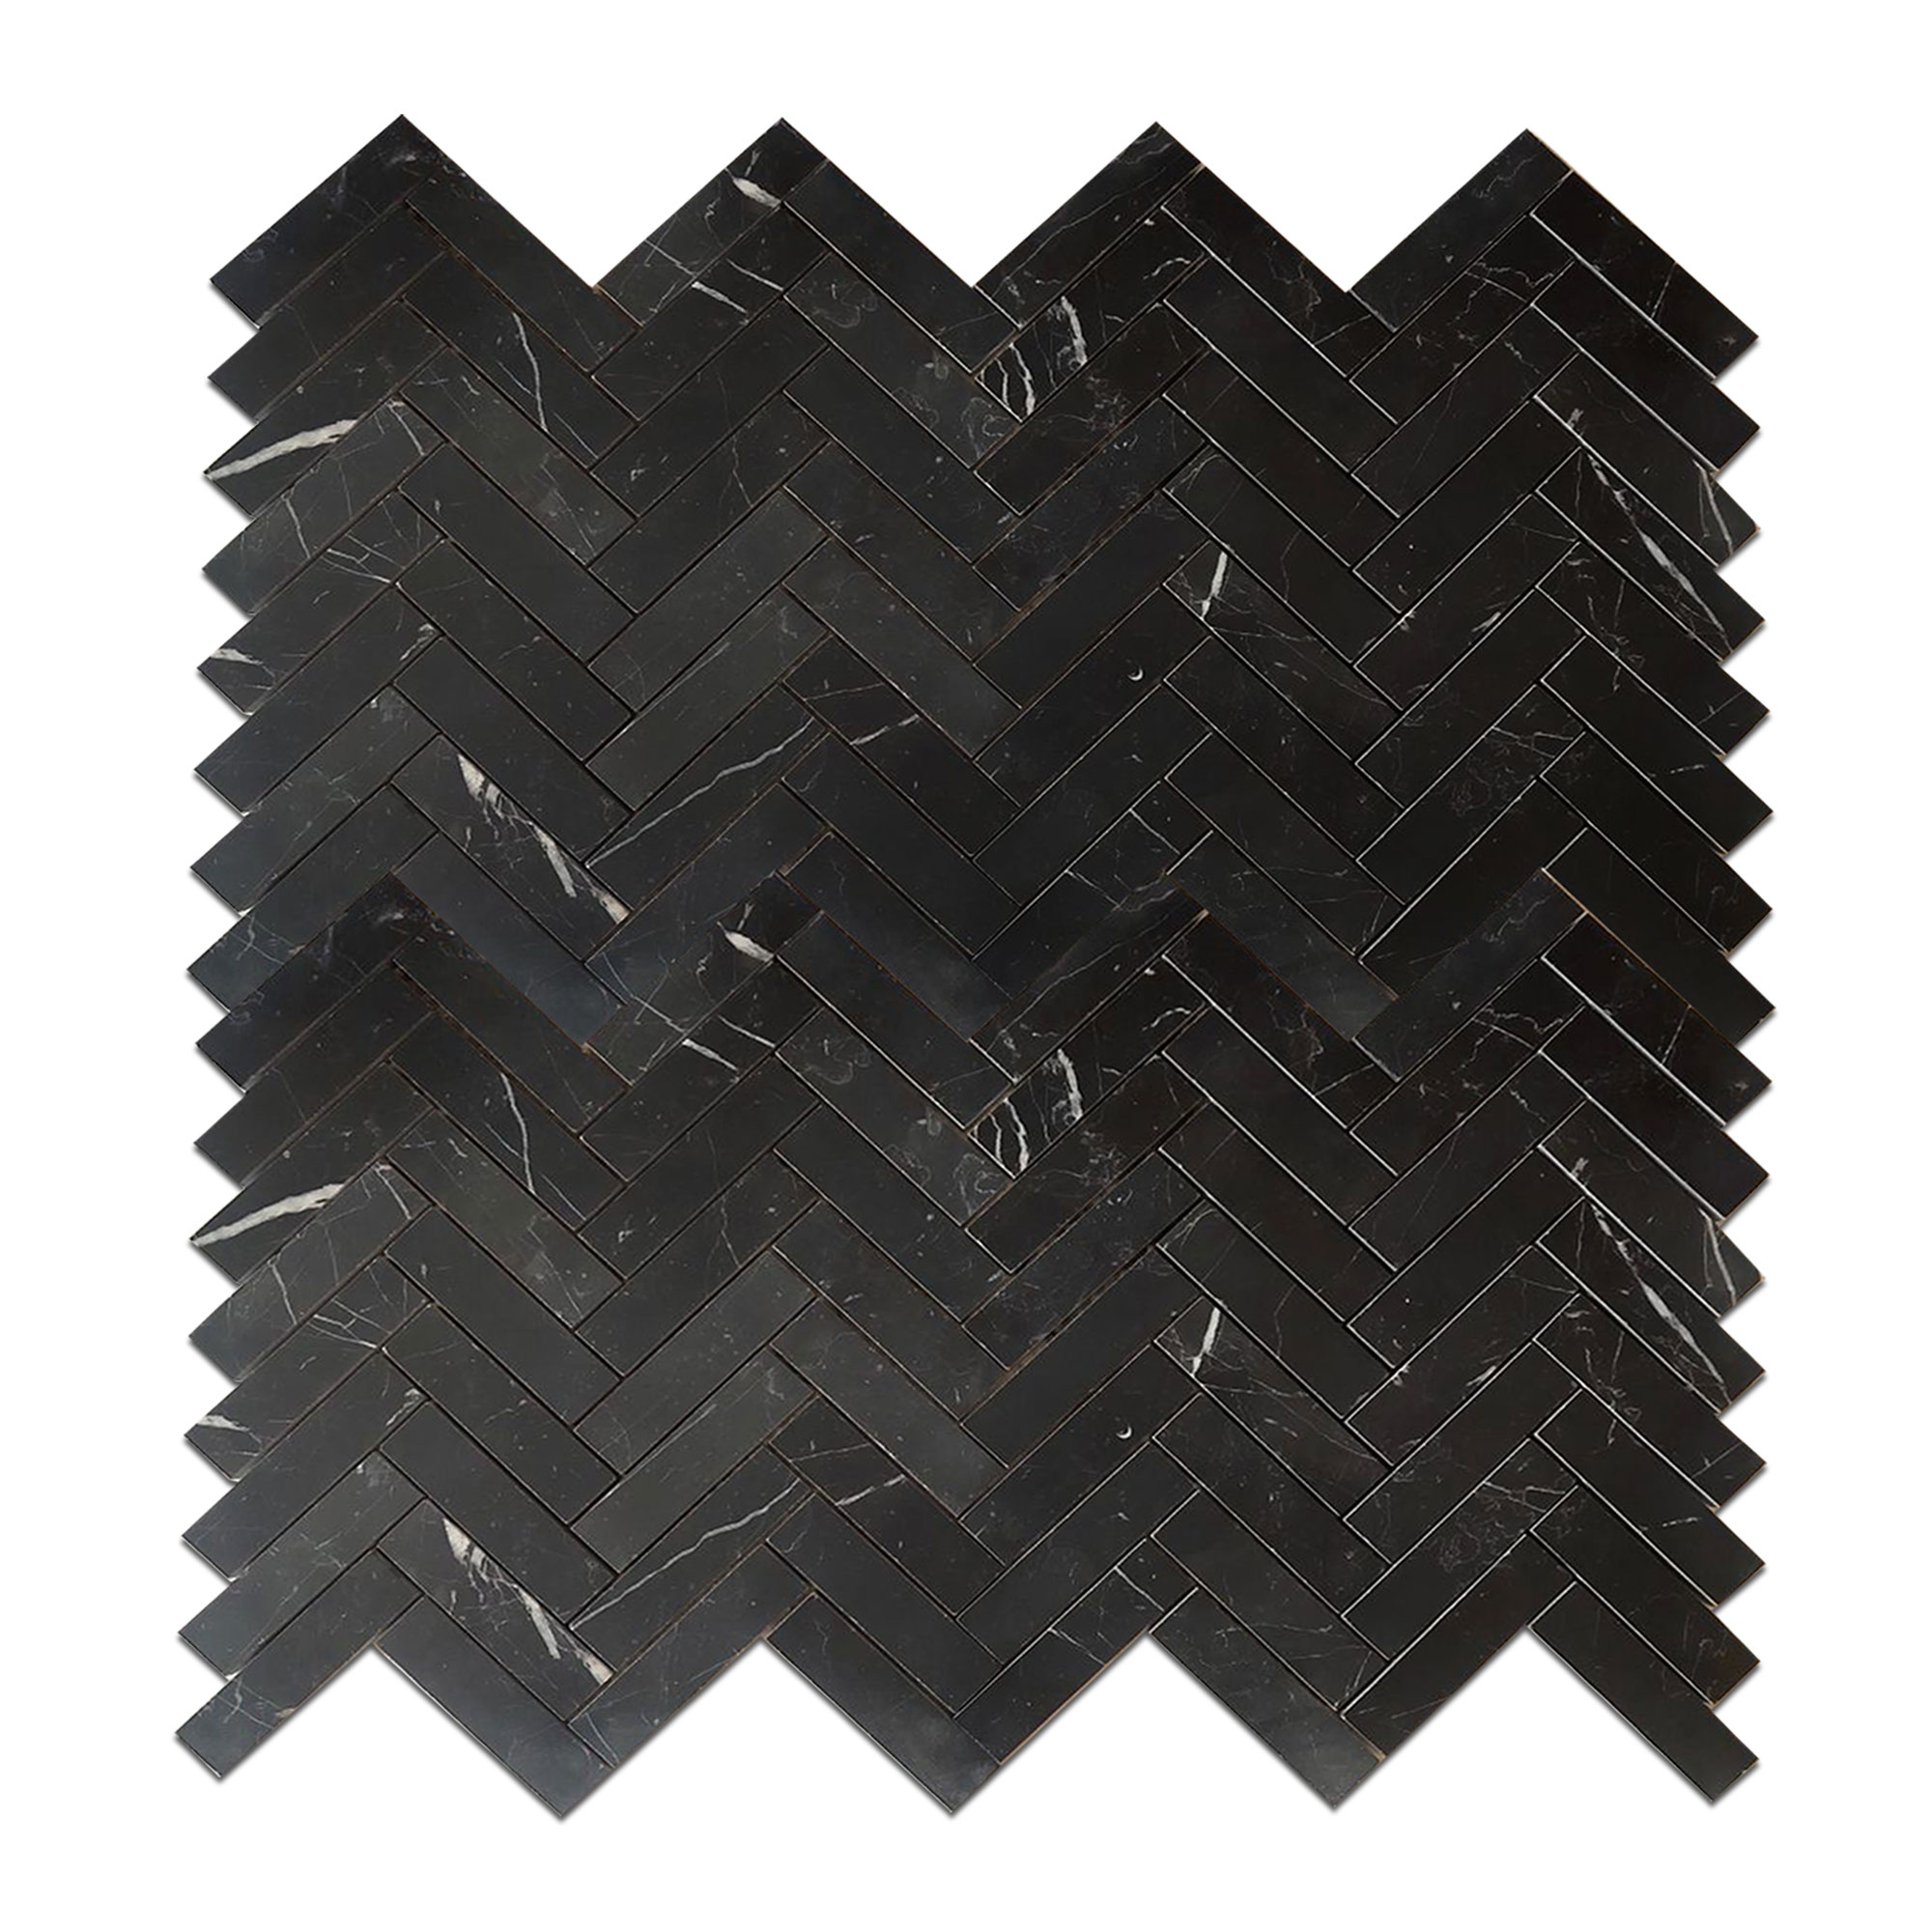 Nero Marquina Black Marble - Honed - 1